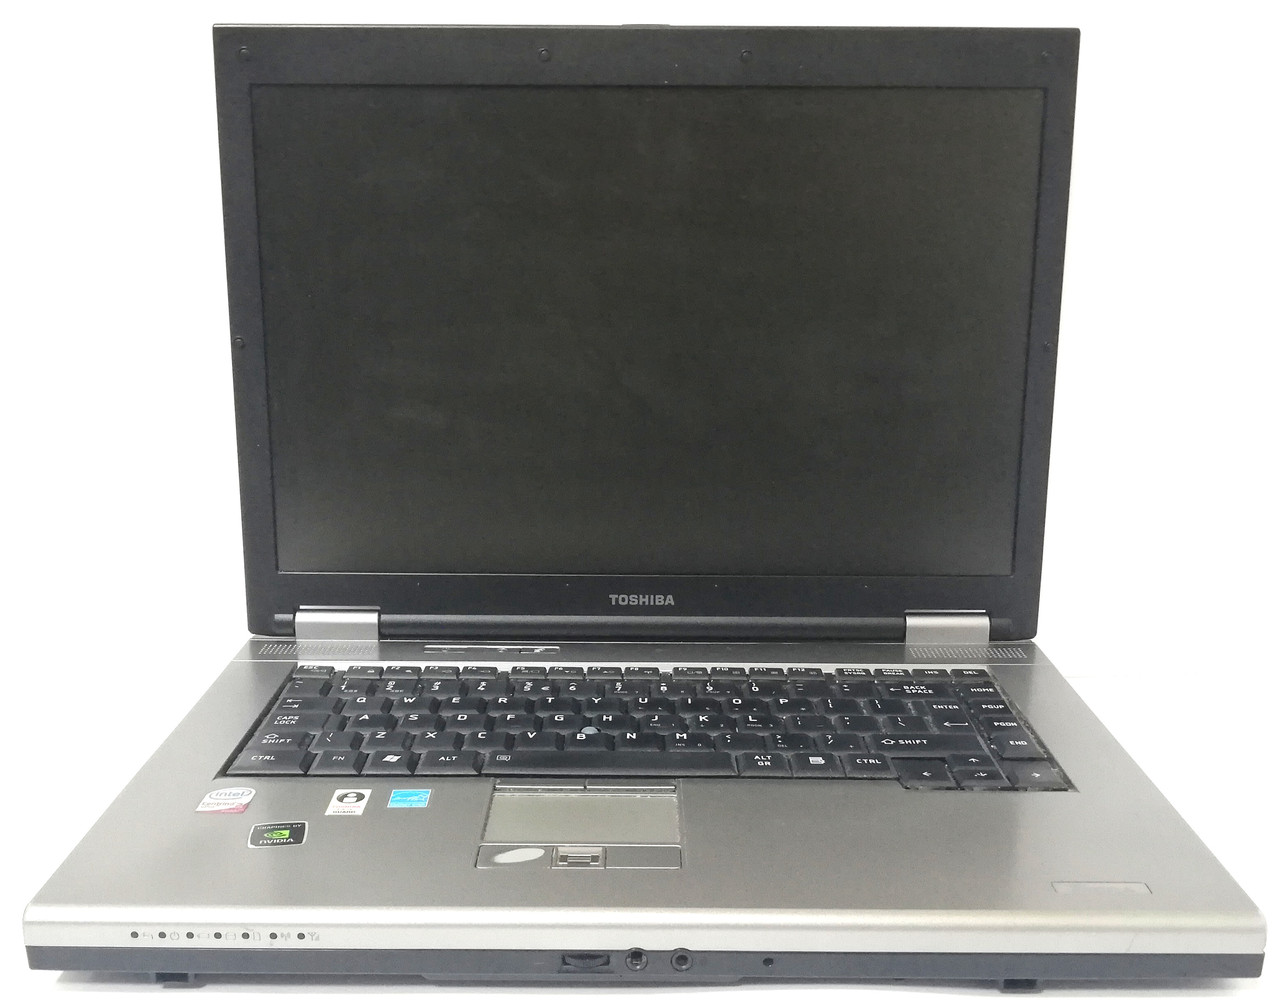 "Ноутбук Toshiba Tecra S10-101 15"" Intel Core 2 Duo P8400 2.26 ГГц 512 MБ Б/У"